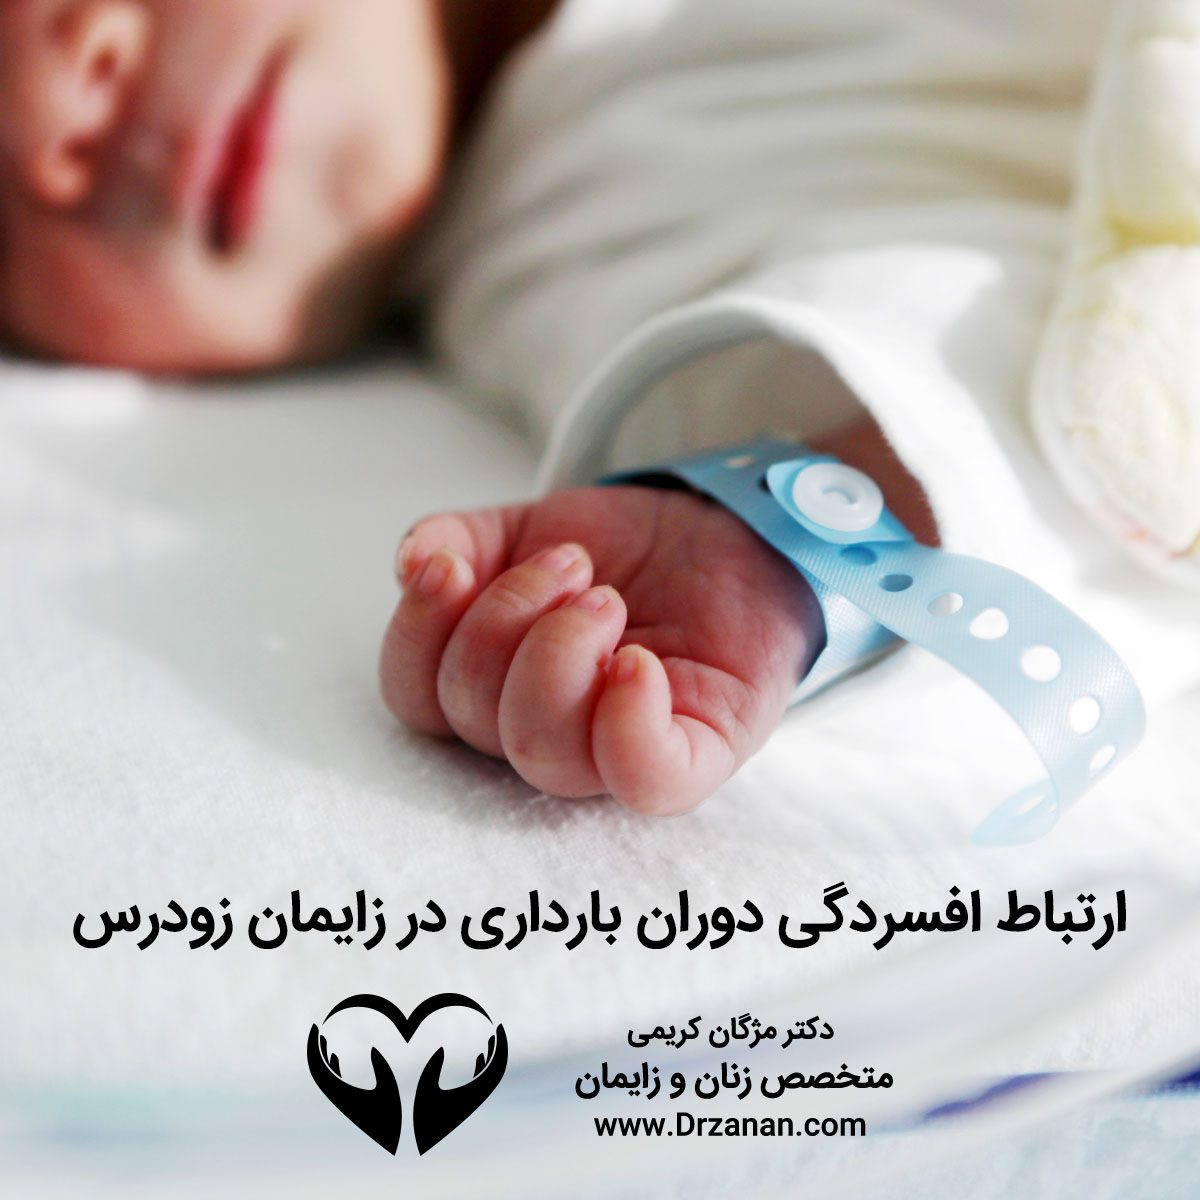 depression-communication-in-preterm-delivery-1200x1200.jpg